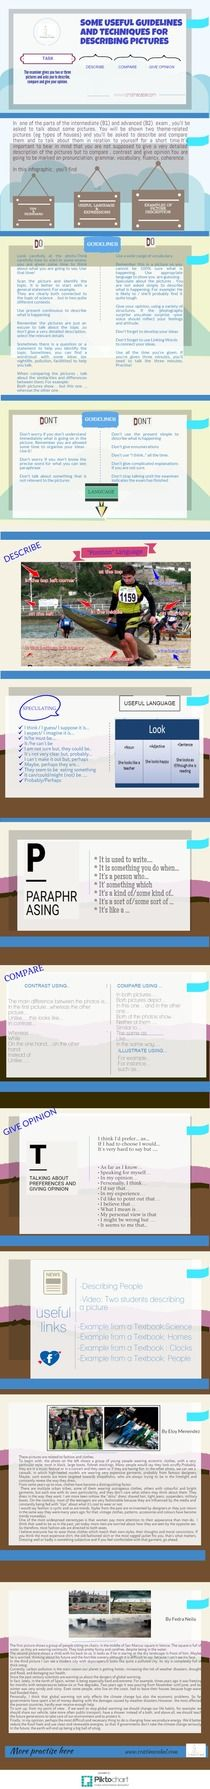 Some Useful Guidelines and Techniques for Picture Description | Piktochart Infographic Editor